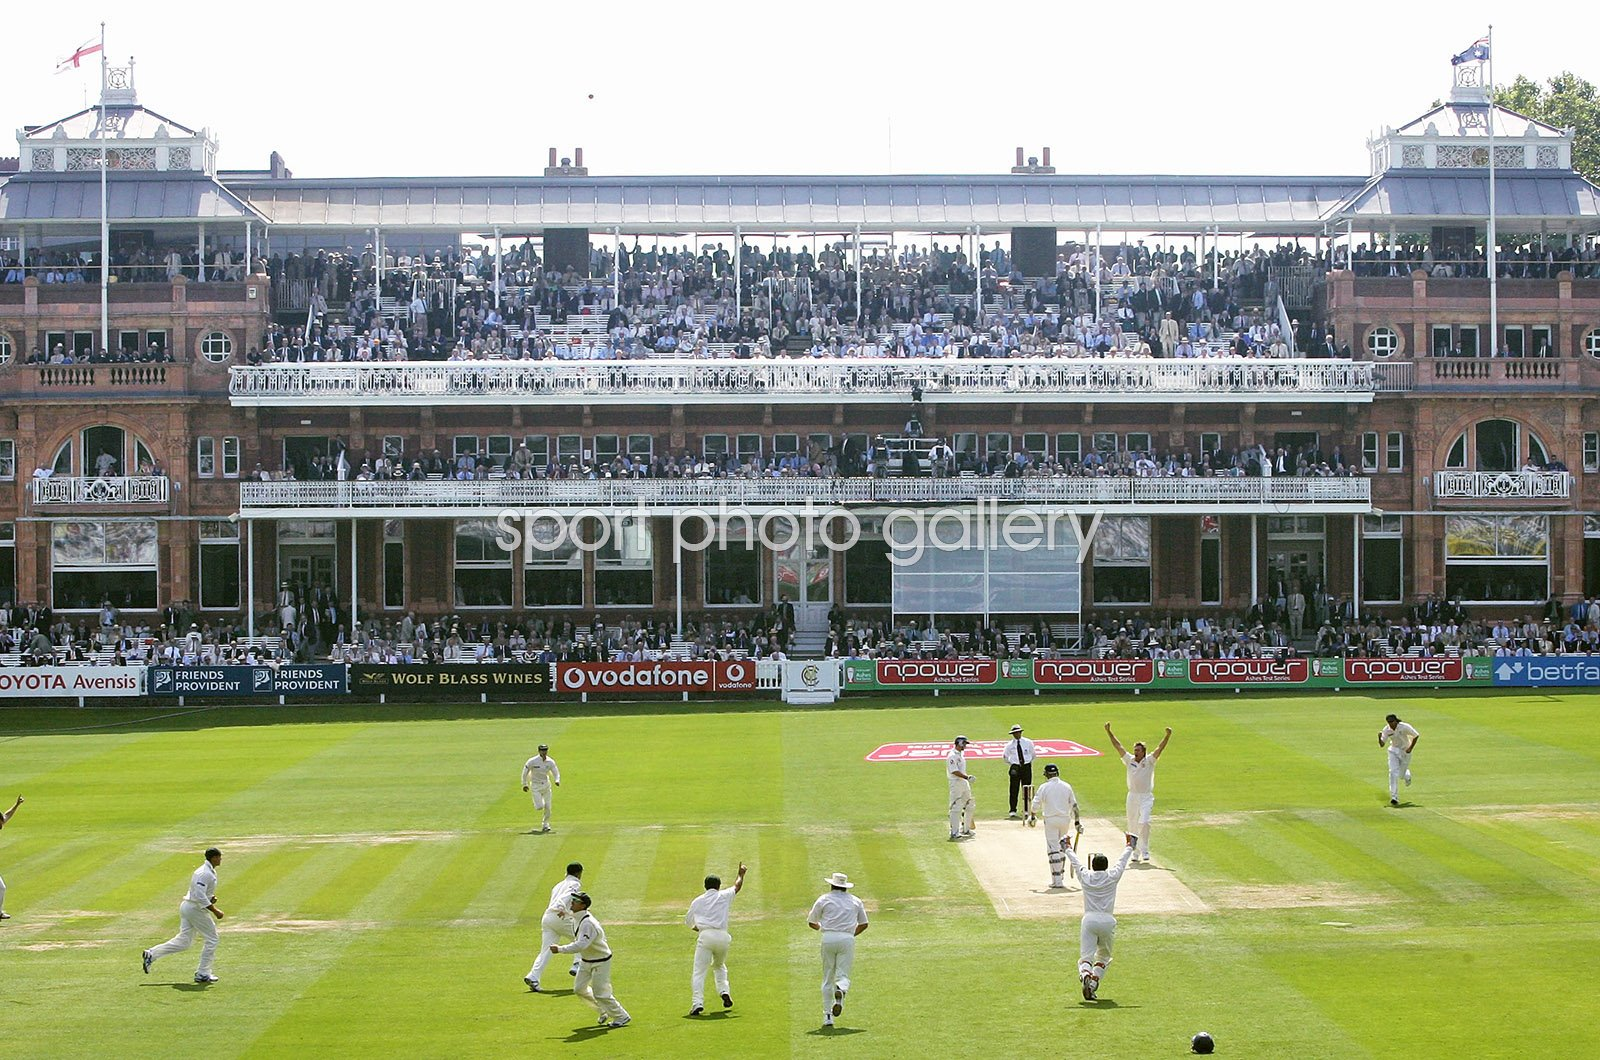 Glenn McGrath Australia 500th career Test wicket Lord's 2005